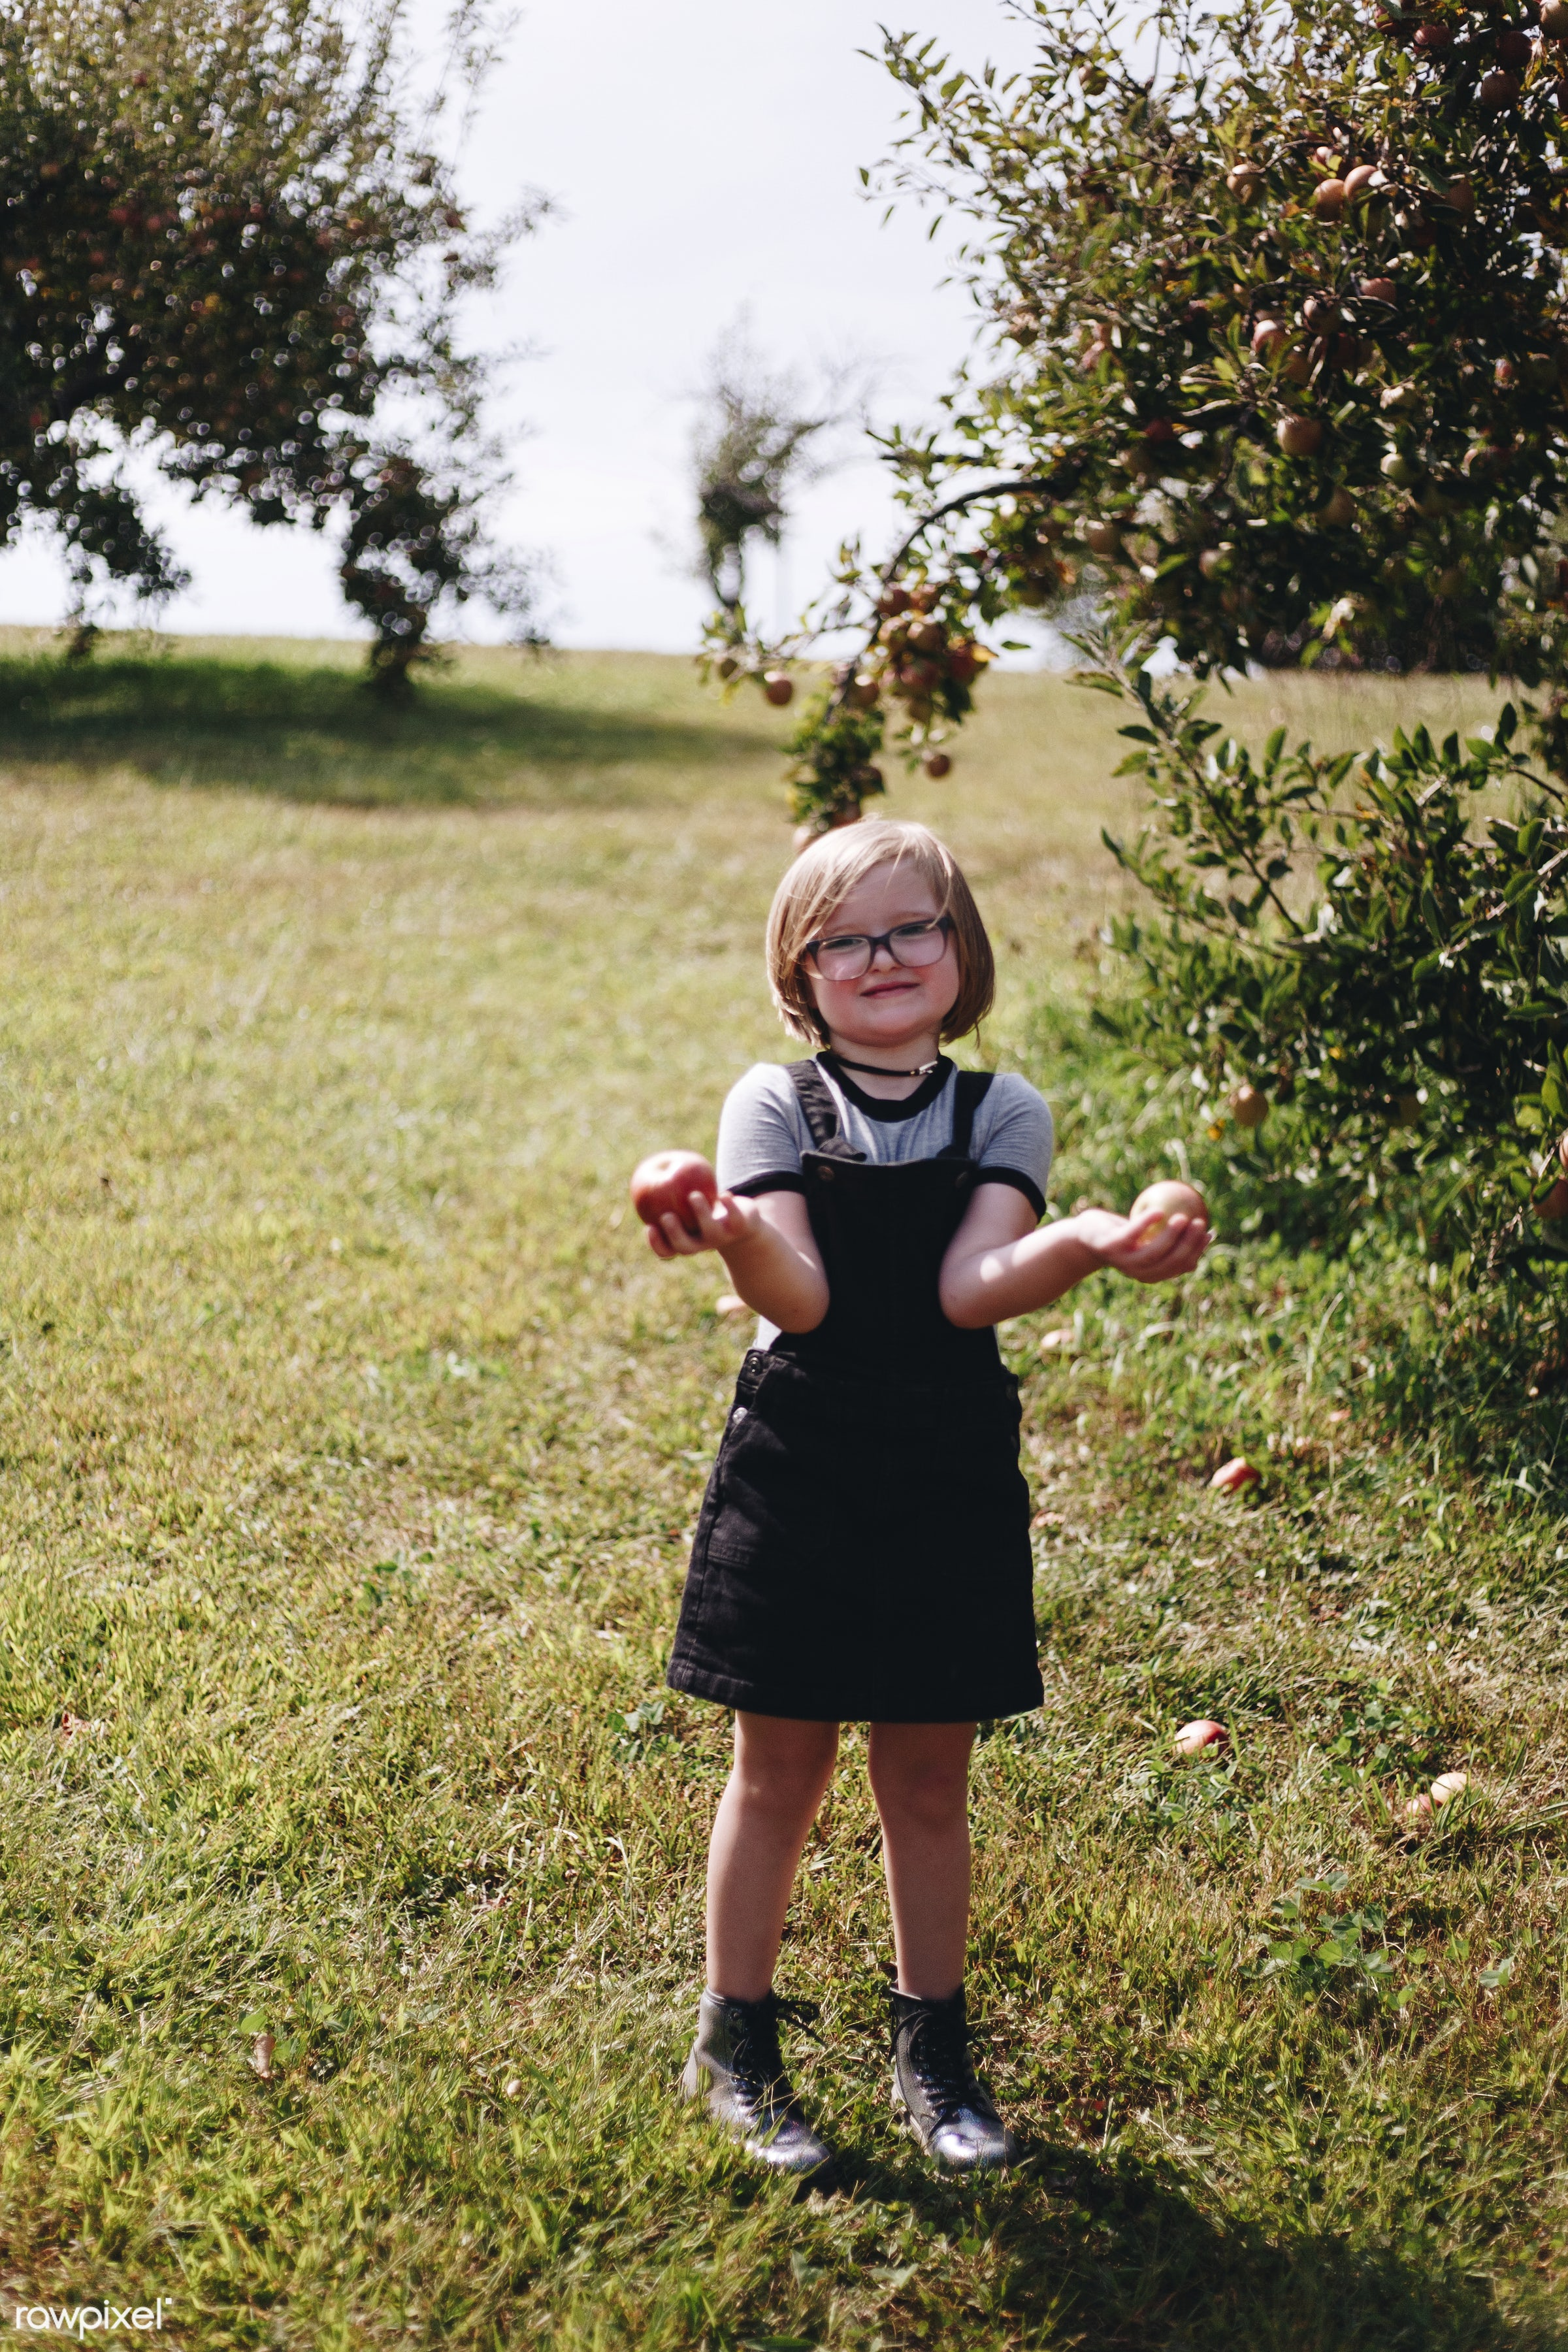 A young girl is having fun in the farm - alone, america, american, canada, canadian, caucasian, cheerful, child, countryside...